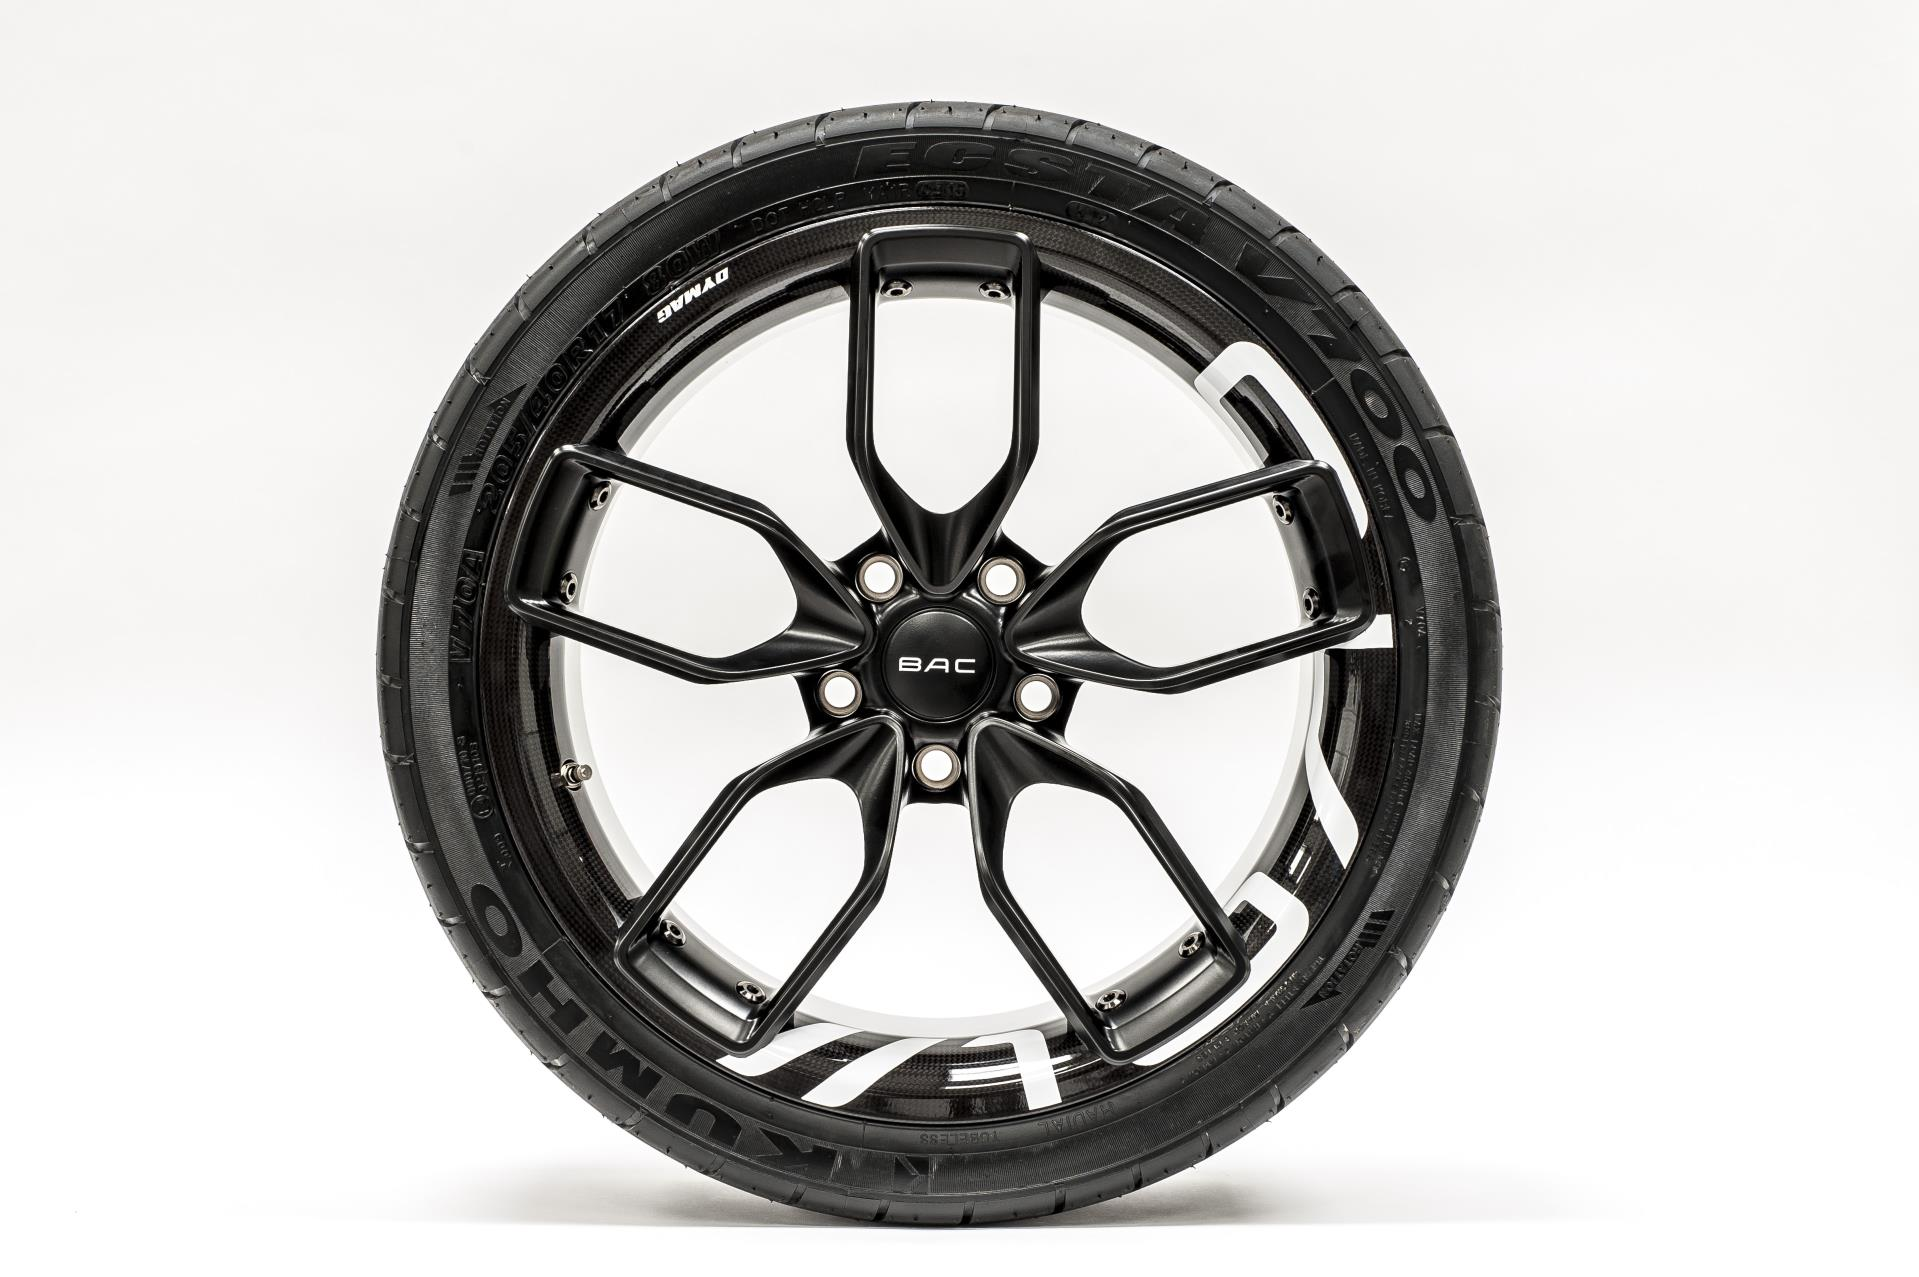 Bac To Showcase Carbon Composite Wheels At 2016 Goodwood